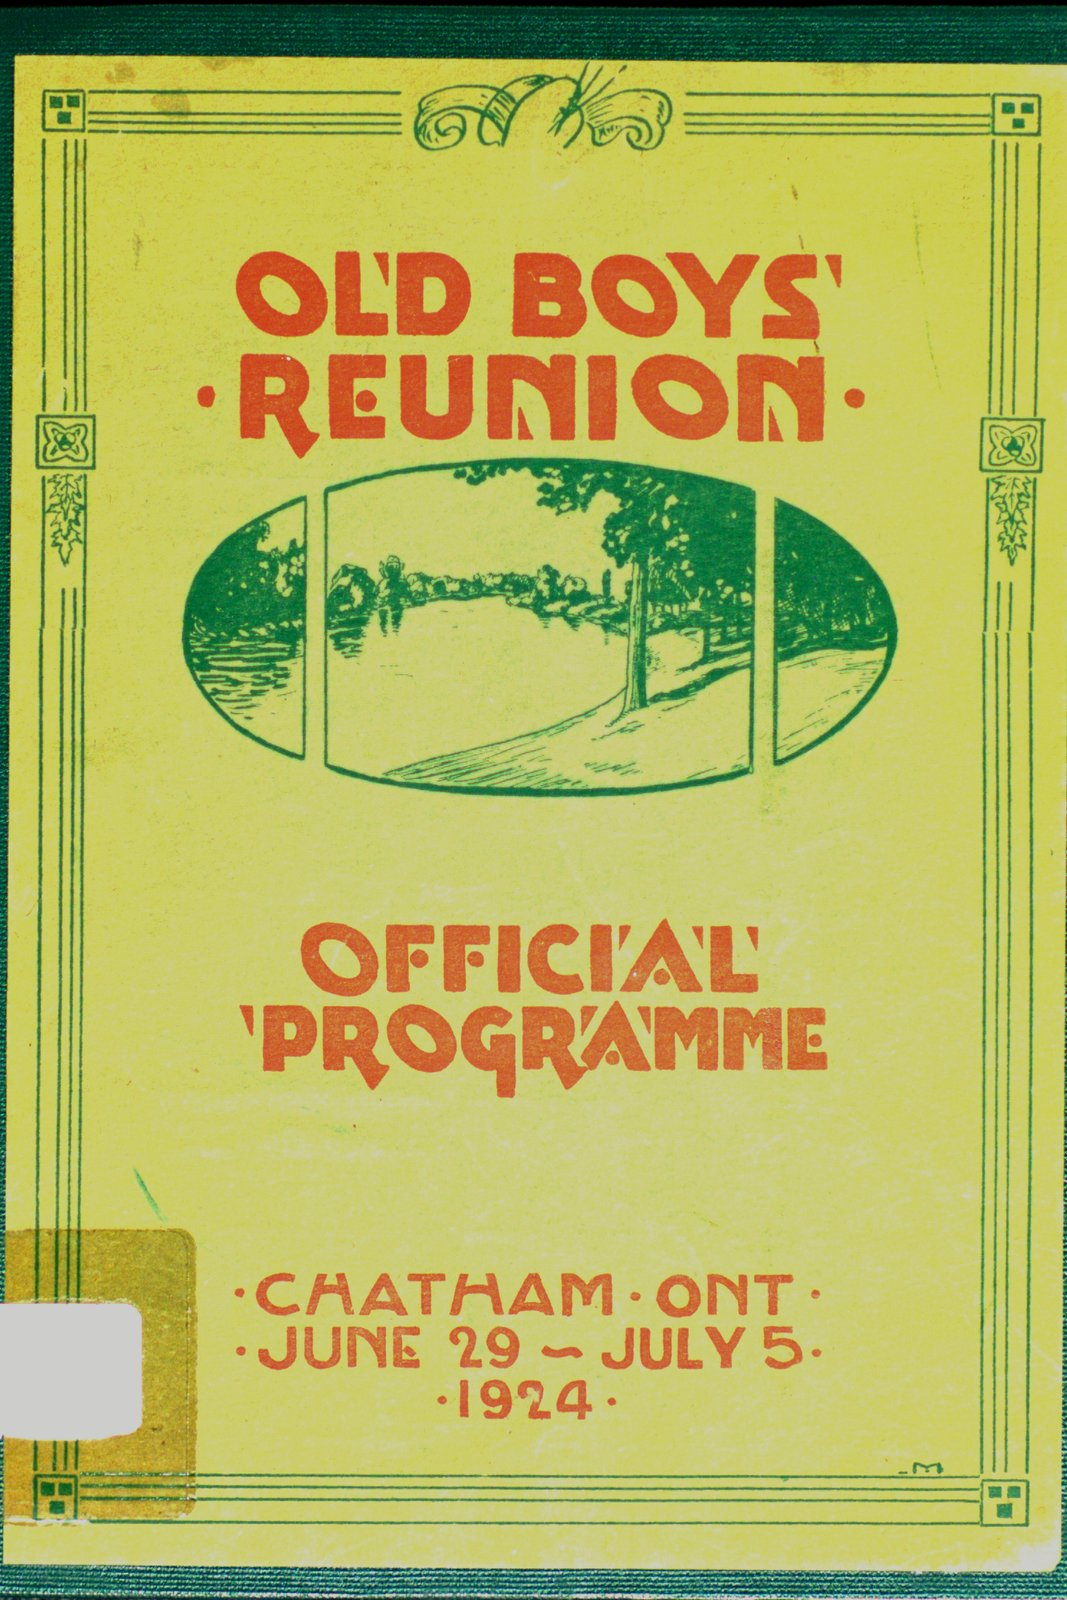 Official programme of the Old Boys' and Girls' Re-union held in Chatham, June 29 to July 5, 1924